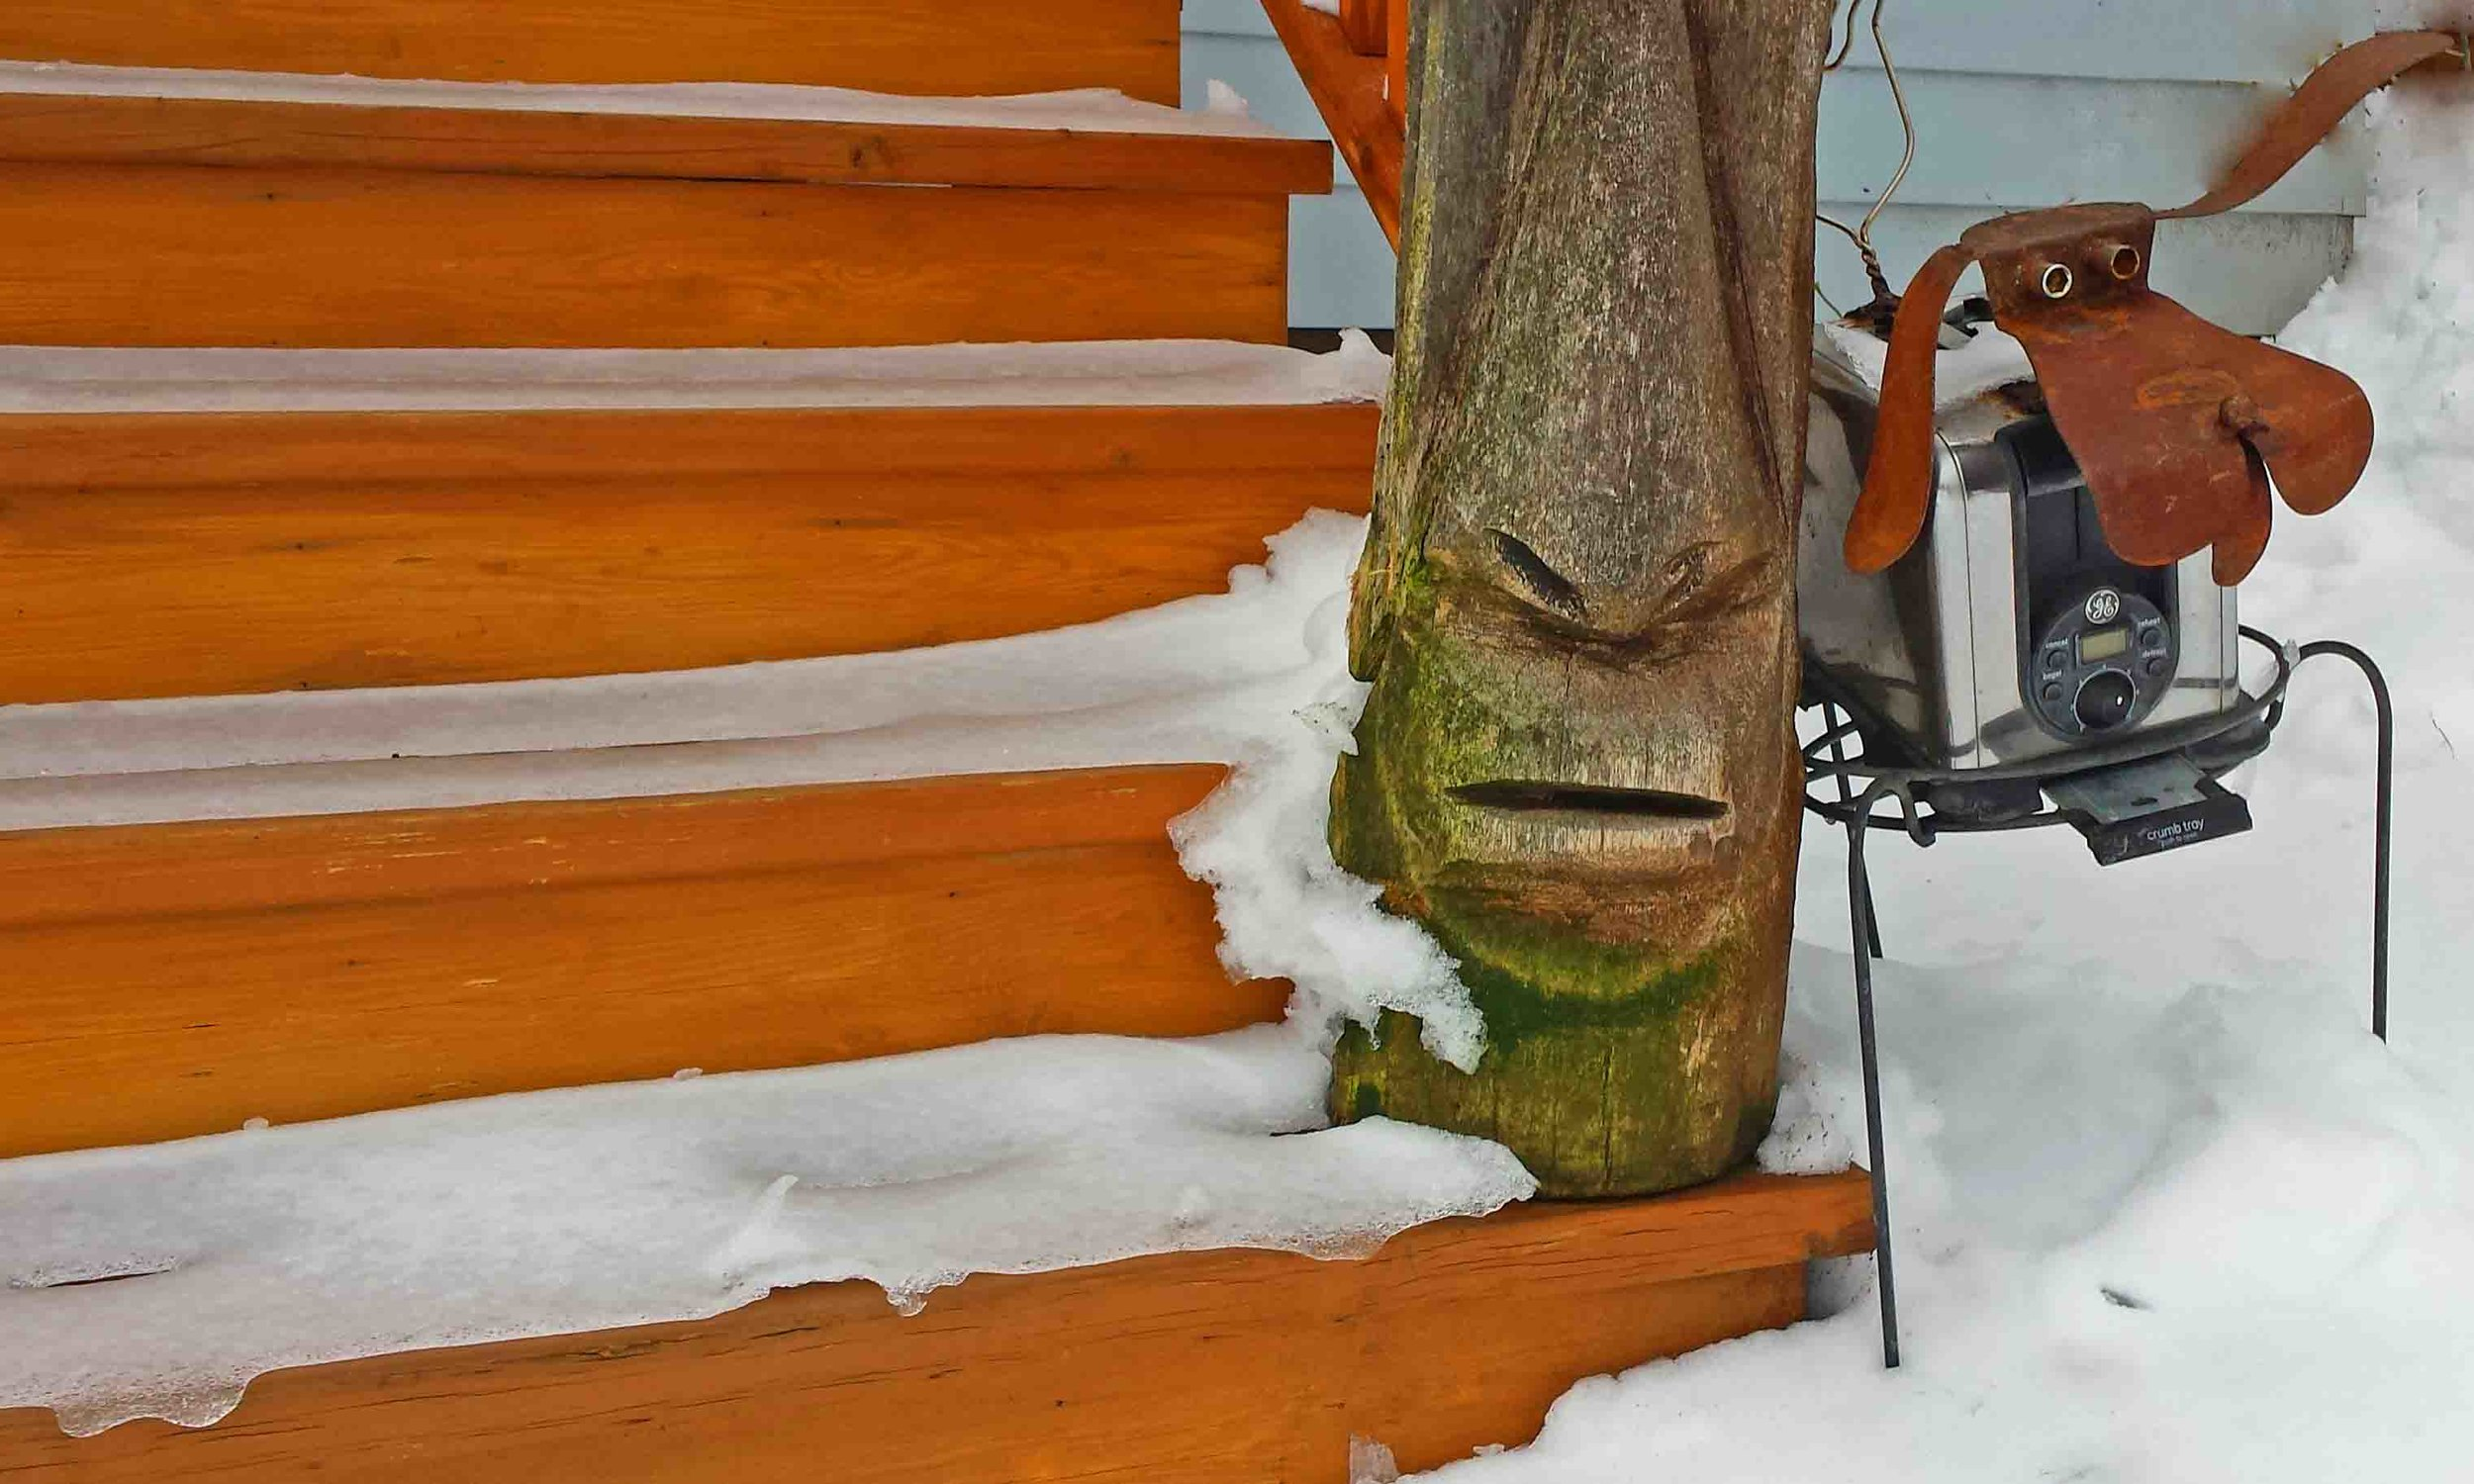 Yes, that's ice on our steps. Tiki dude and me, Rusty, recycled toaster dog, at the home office of DogDiary.org.  Photo: (c) Barb Ayers, www.DogDiary.org